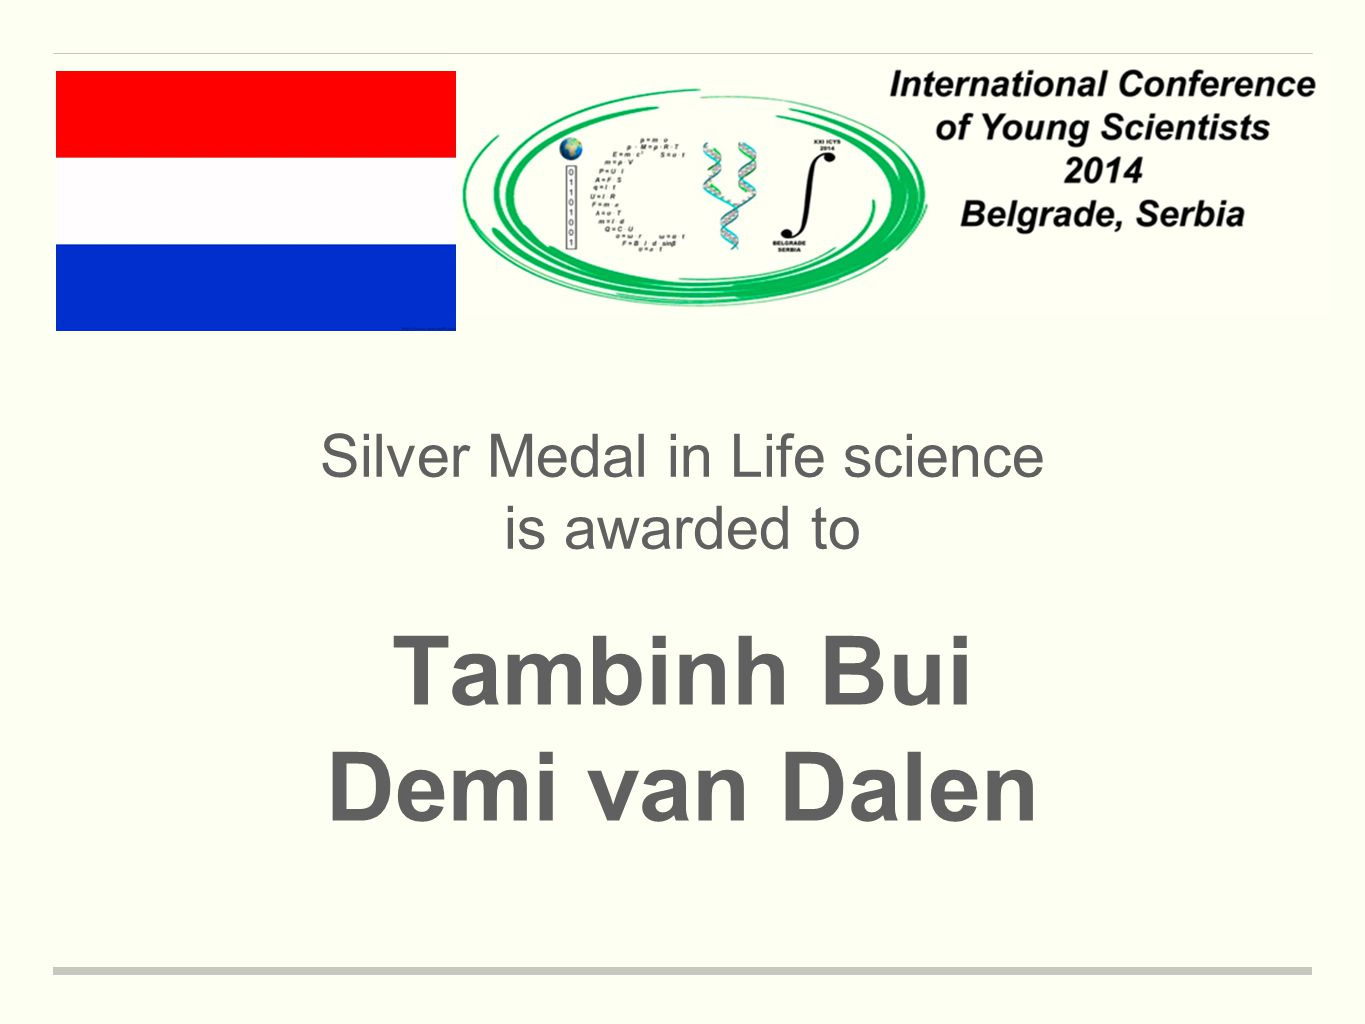 Silver Medal in Life science is awarded to Tambinh Bui Demi van Dalen